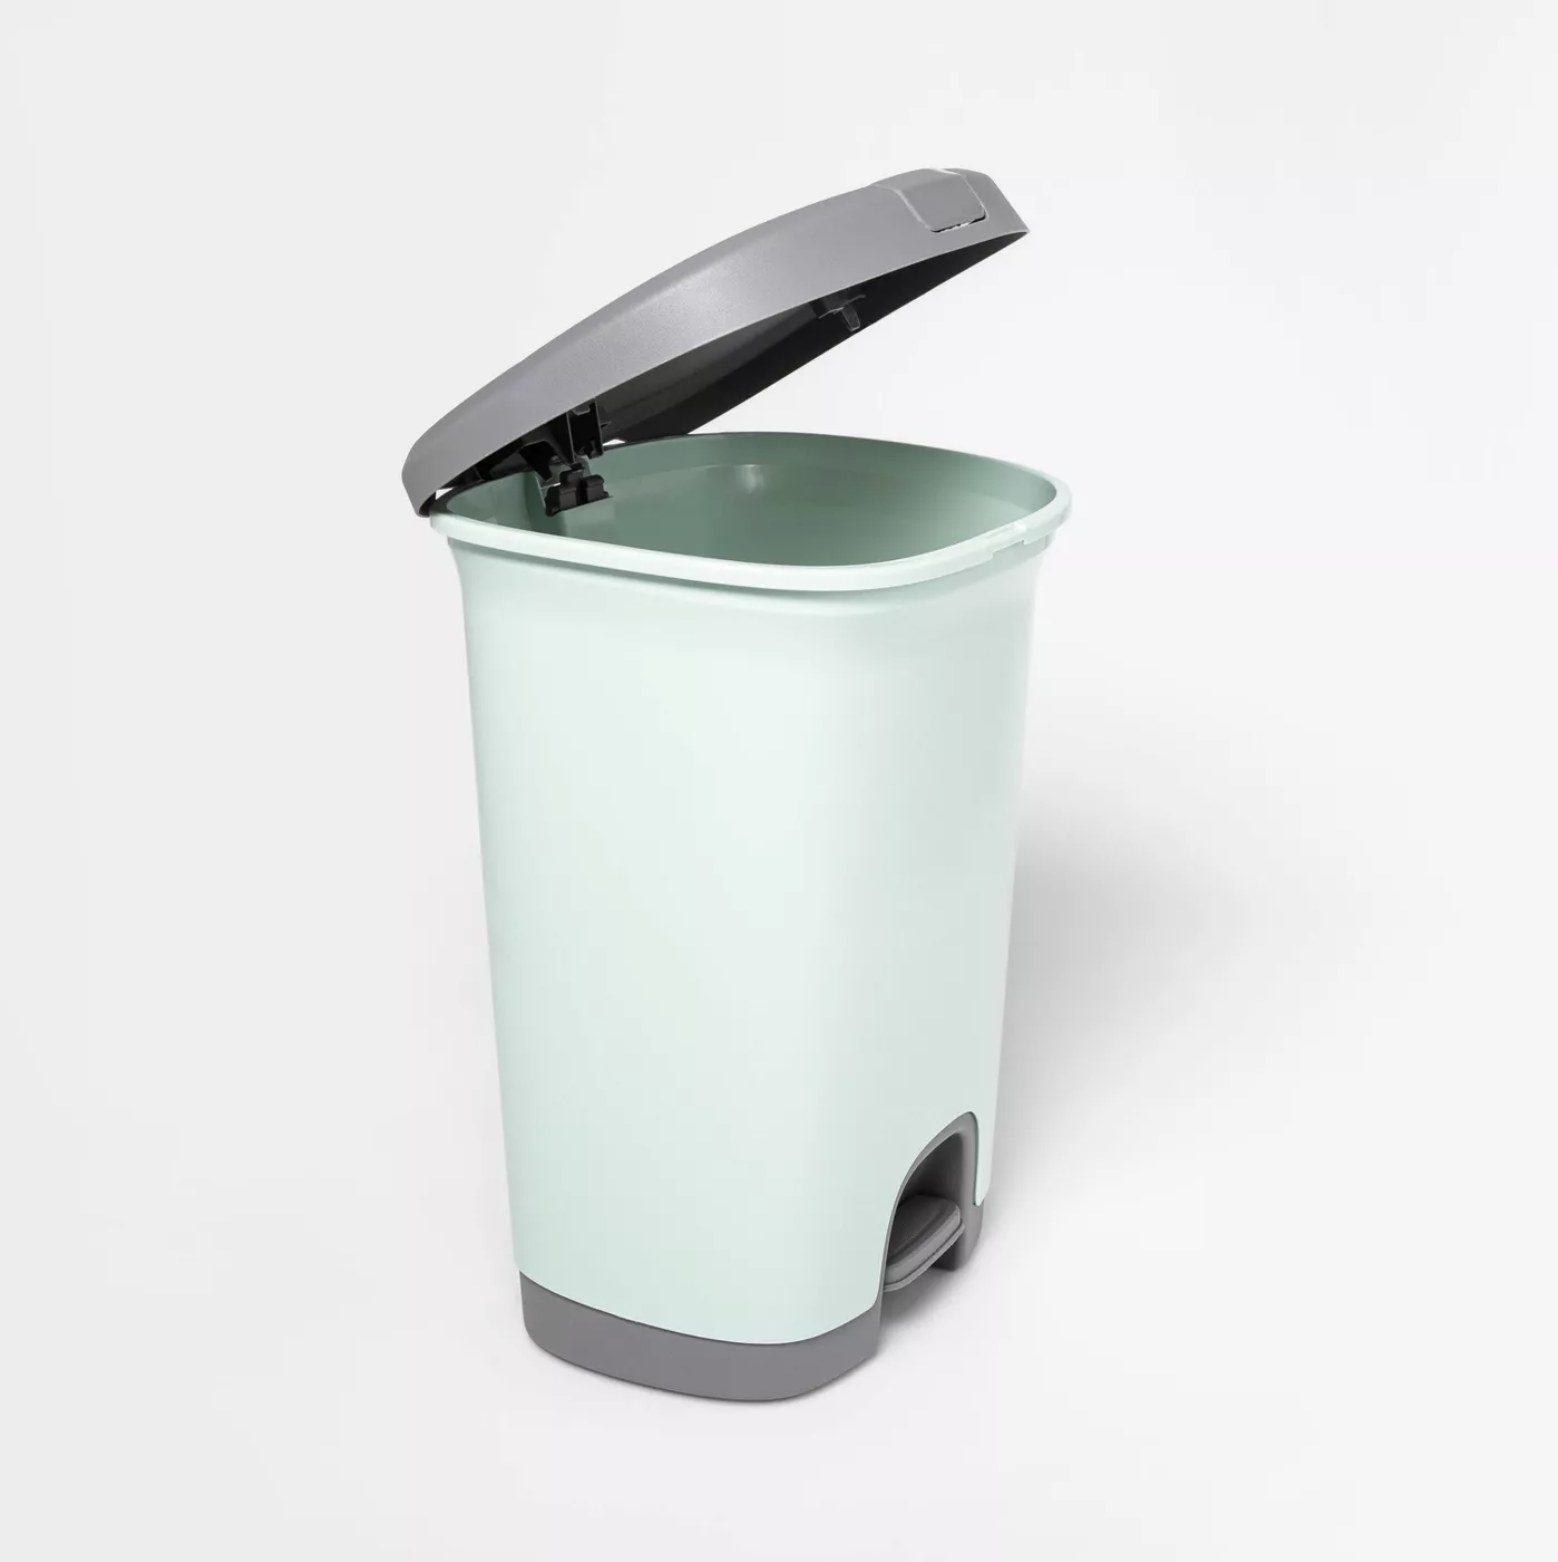 The mint-colored trash can